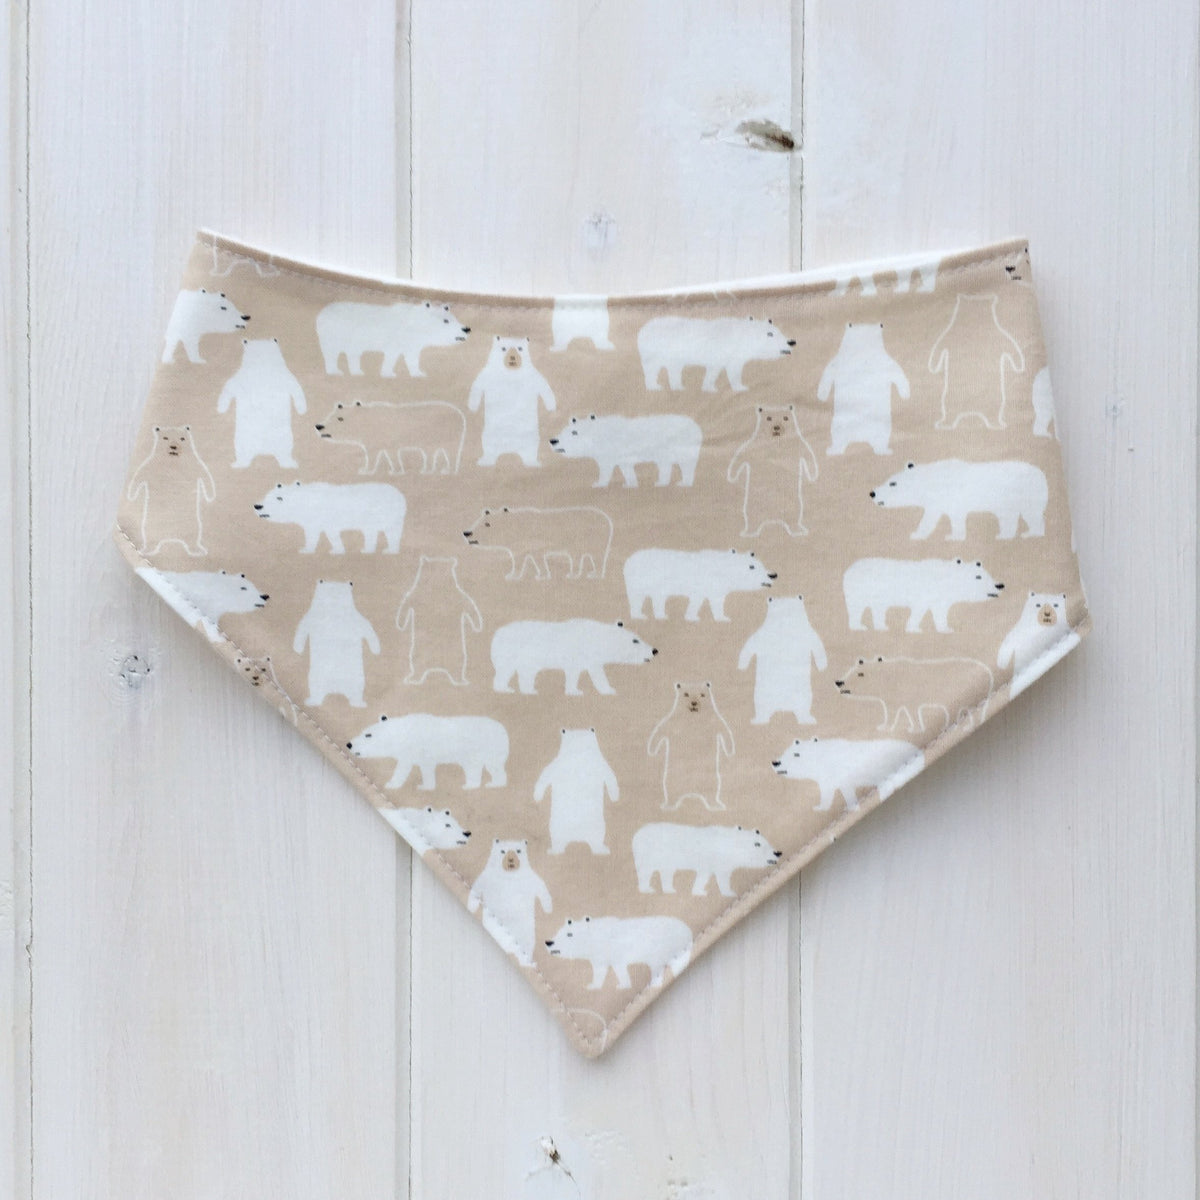 The Bear Necessities Bandana Bib